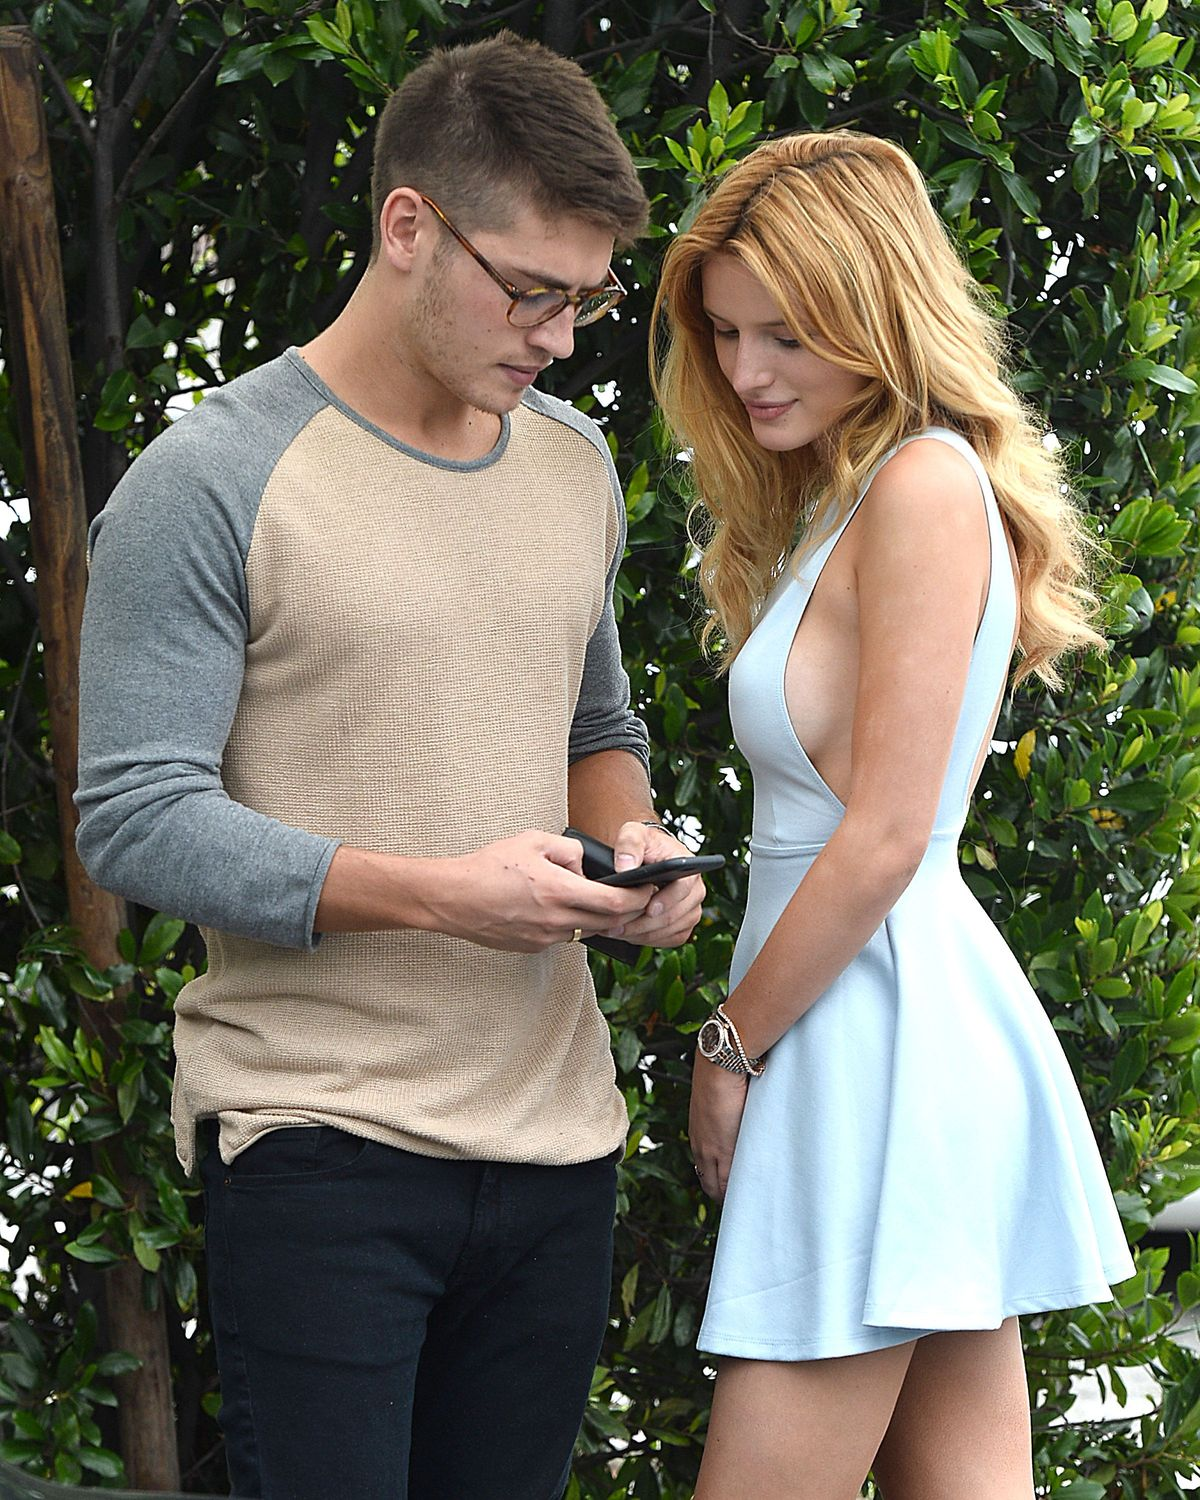 Bella Thorne Braless 29 TheFappening.nu